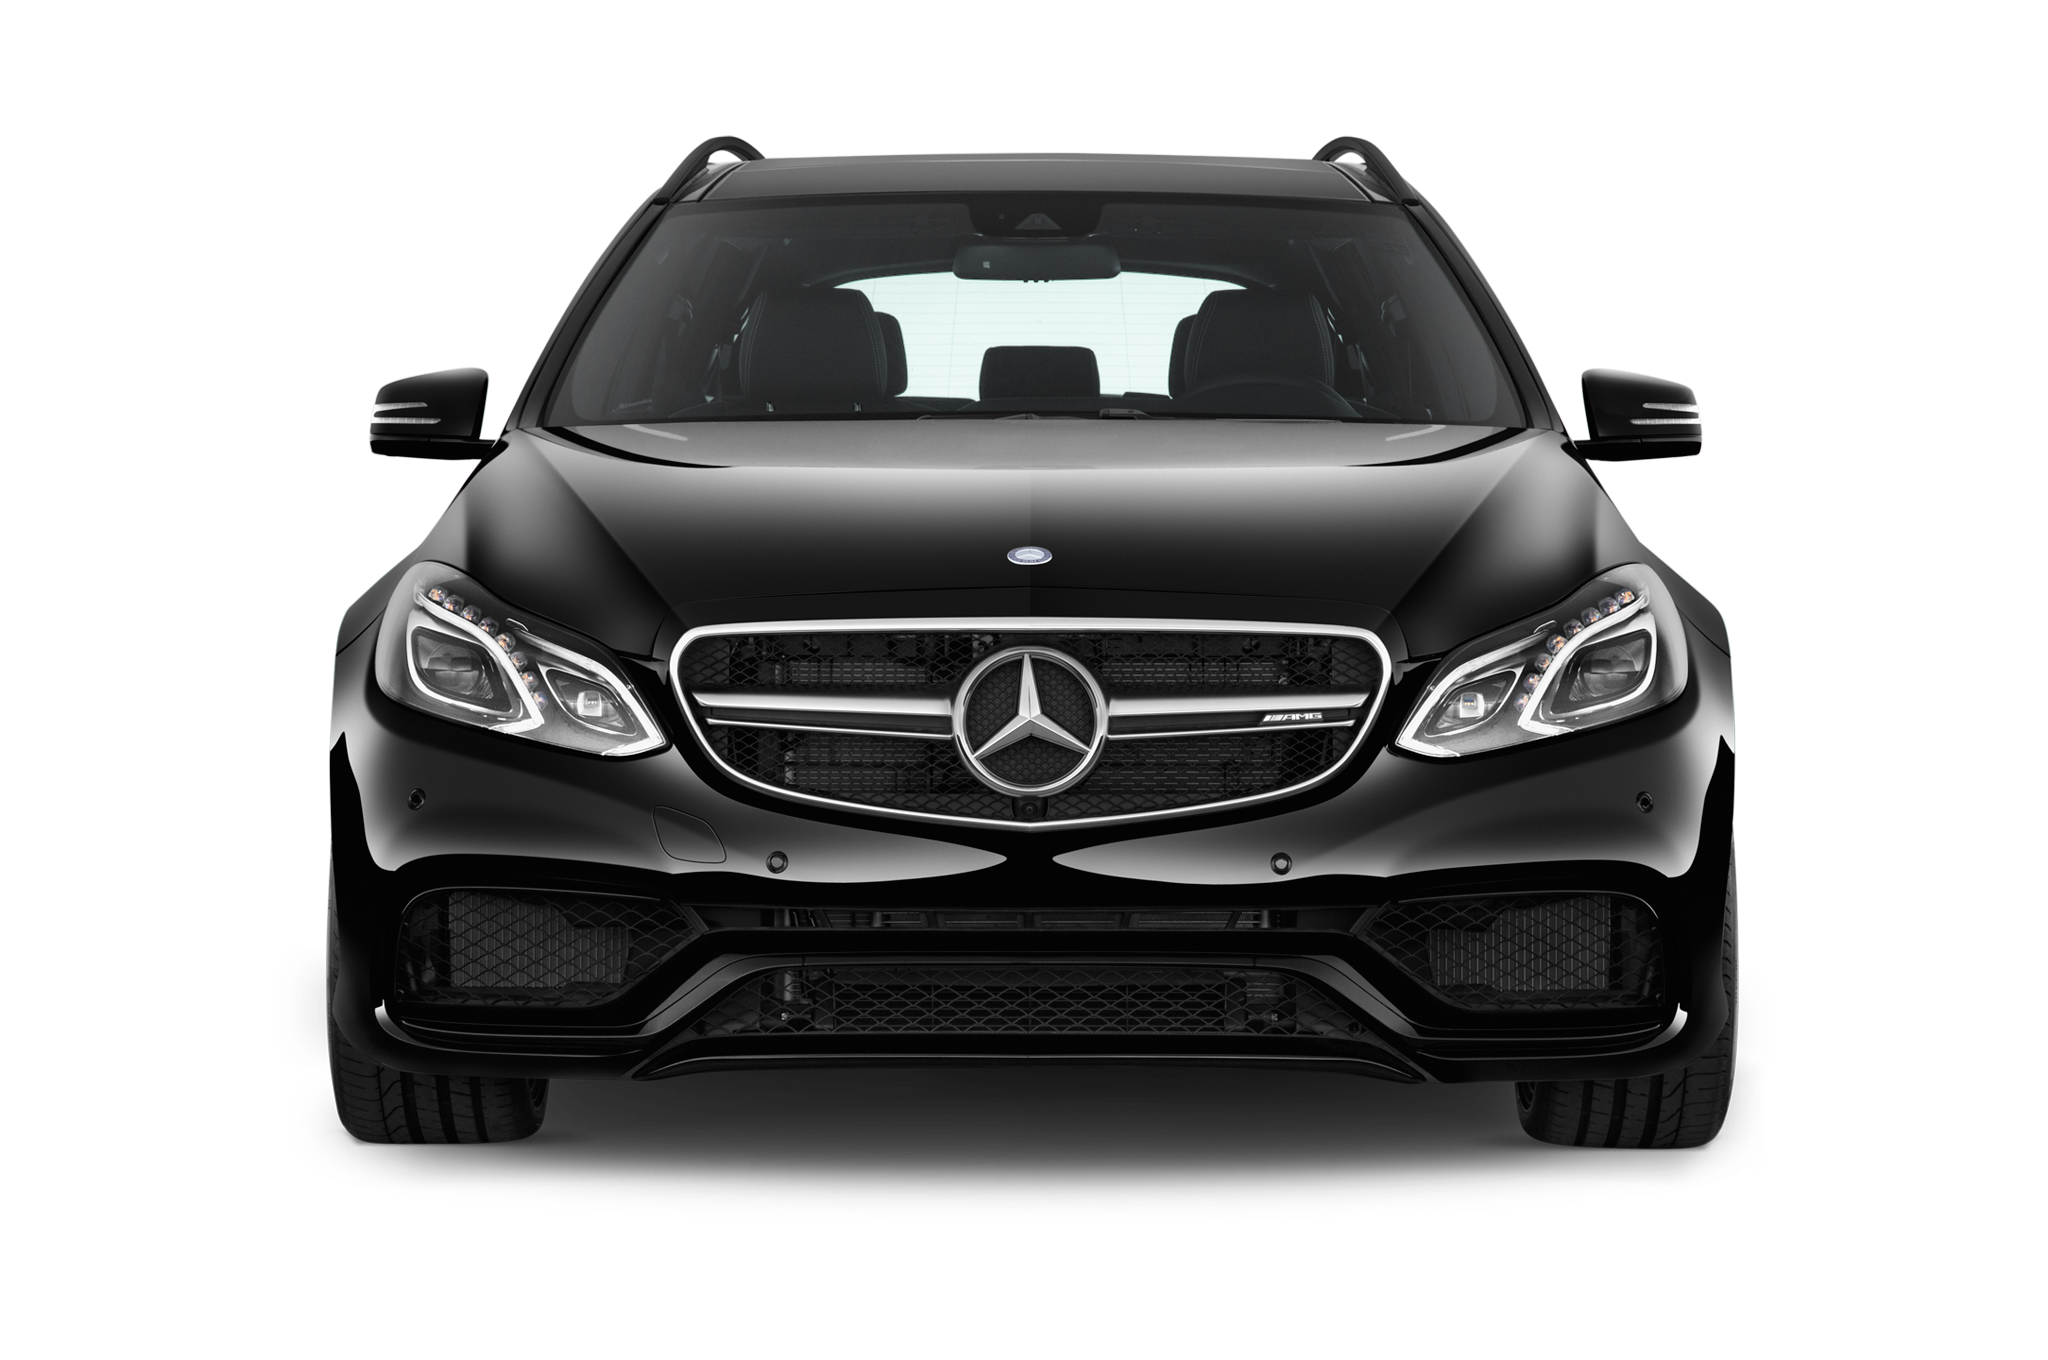 2014 Mercedes Benz CLS63 AMG Gains New E63 s S Model Trim and All